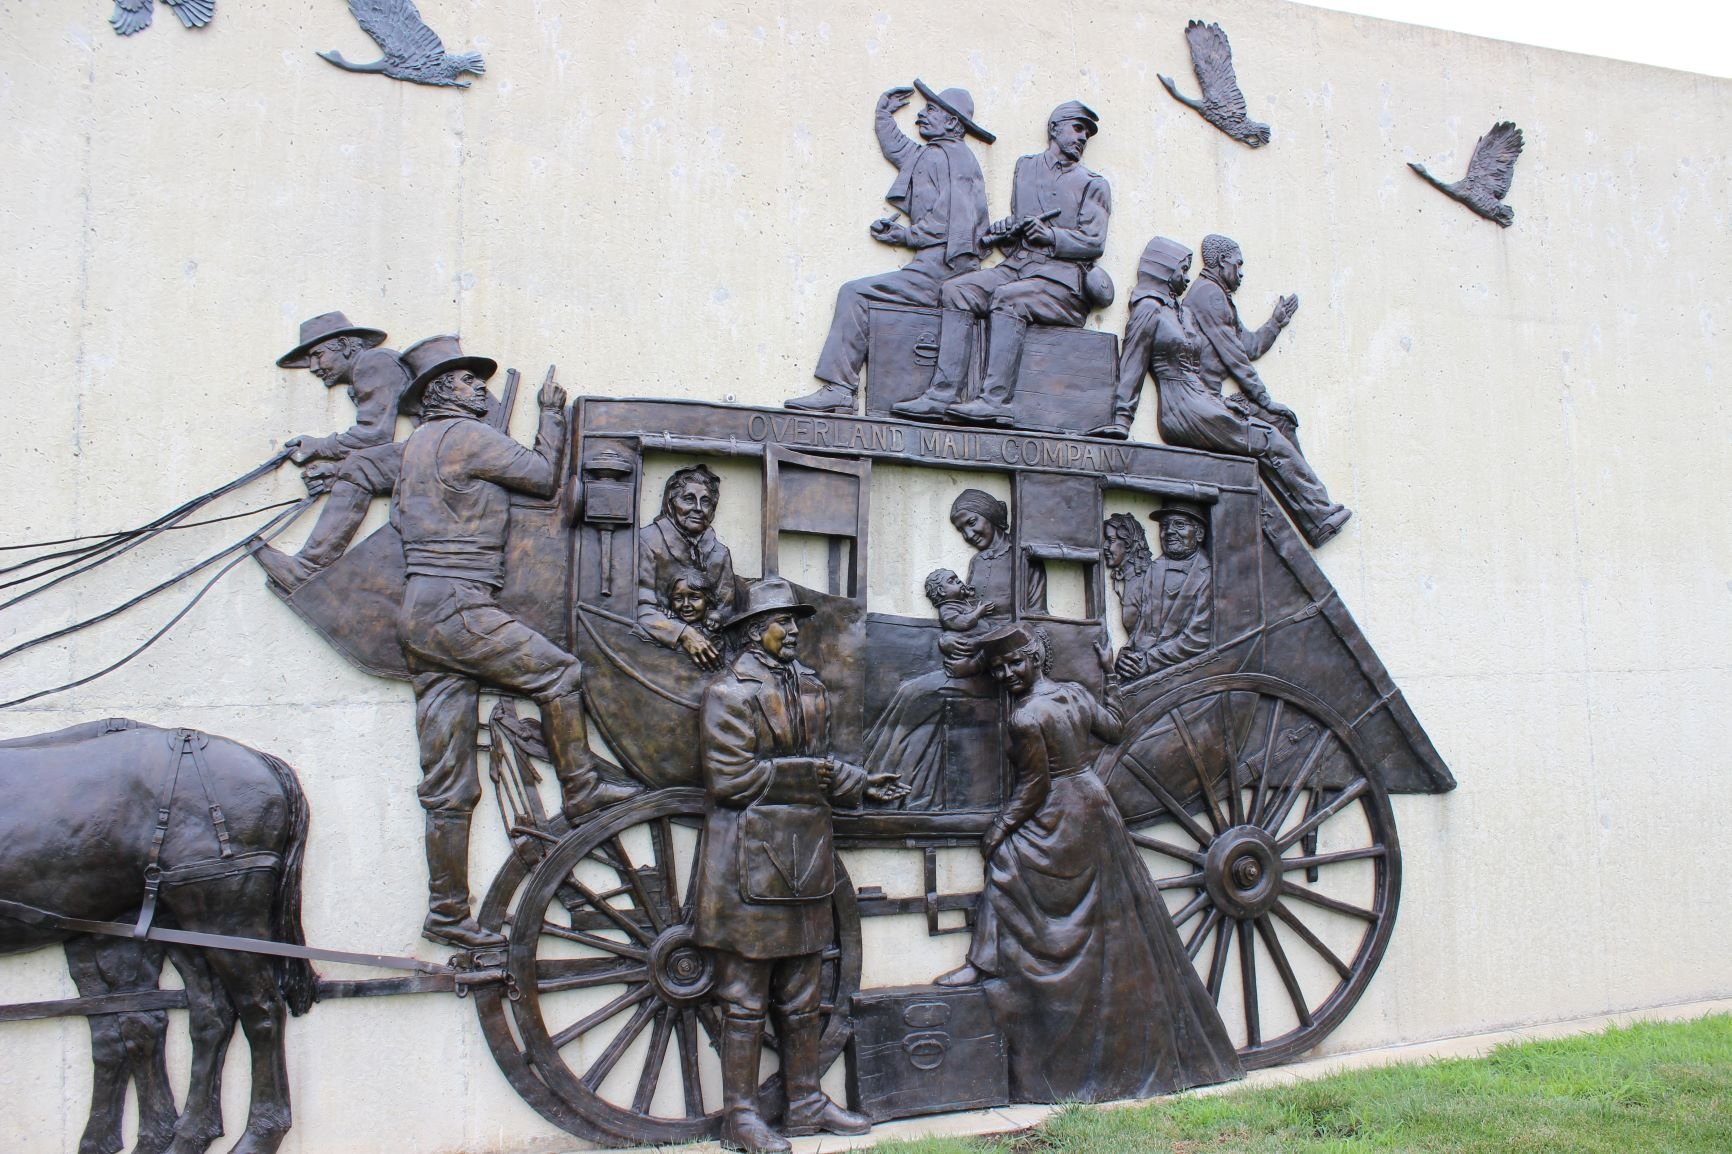 Detail of stagecoach. Photo by Cynthia Prescott.